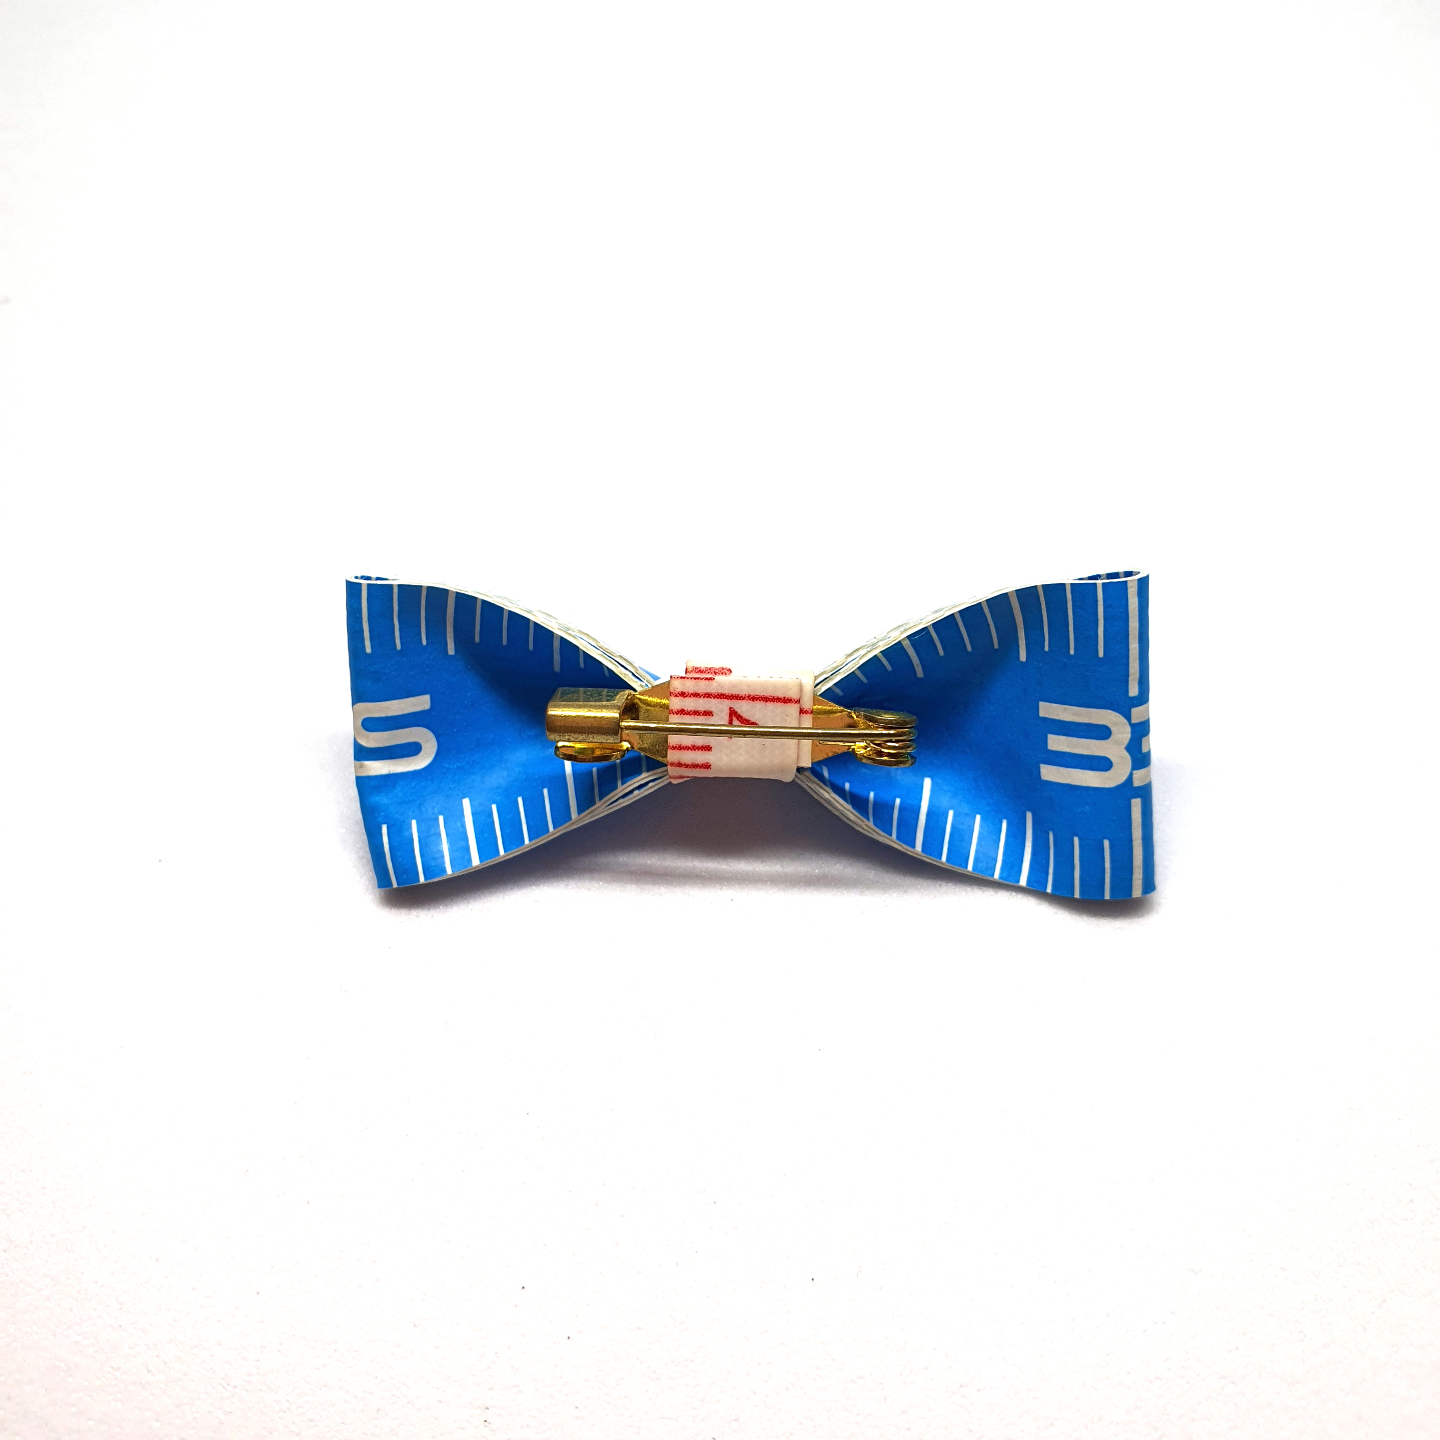 Handmade Accessories Measuring Tape Ribbon Brooches Blue 2 by Doe & Audrey